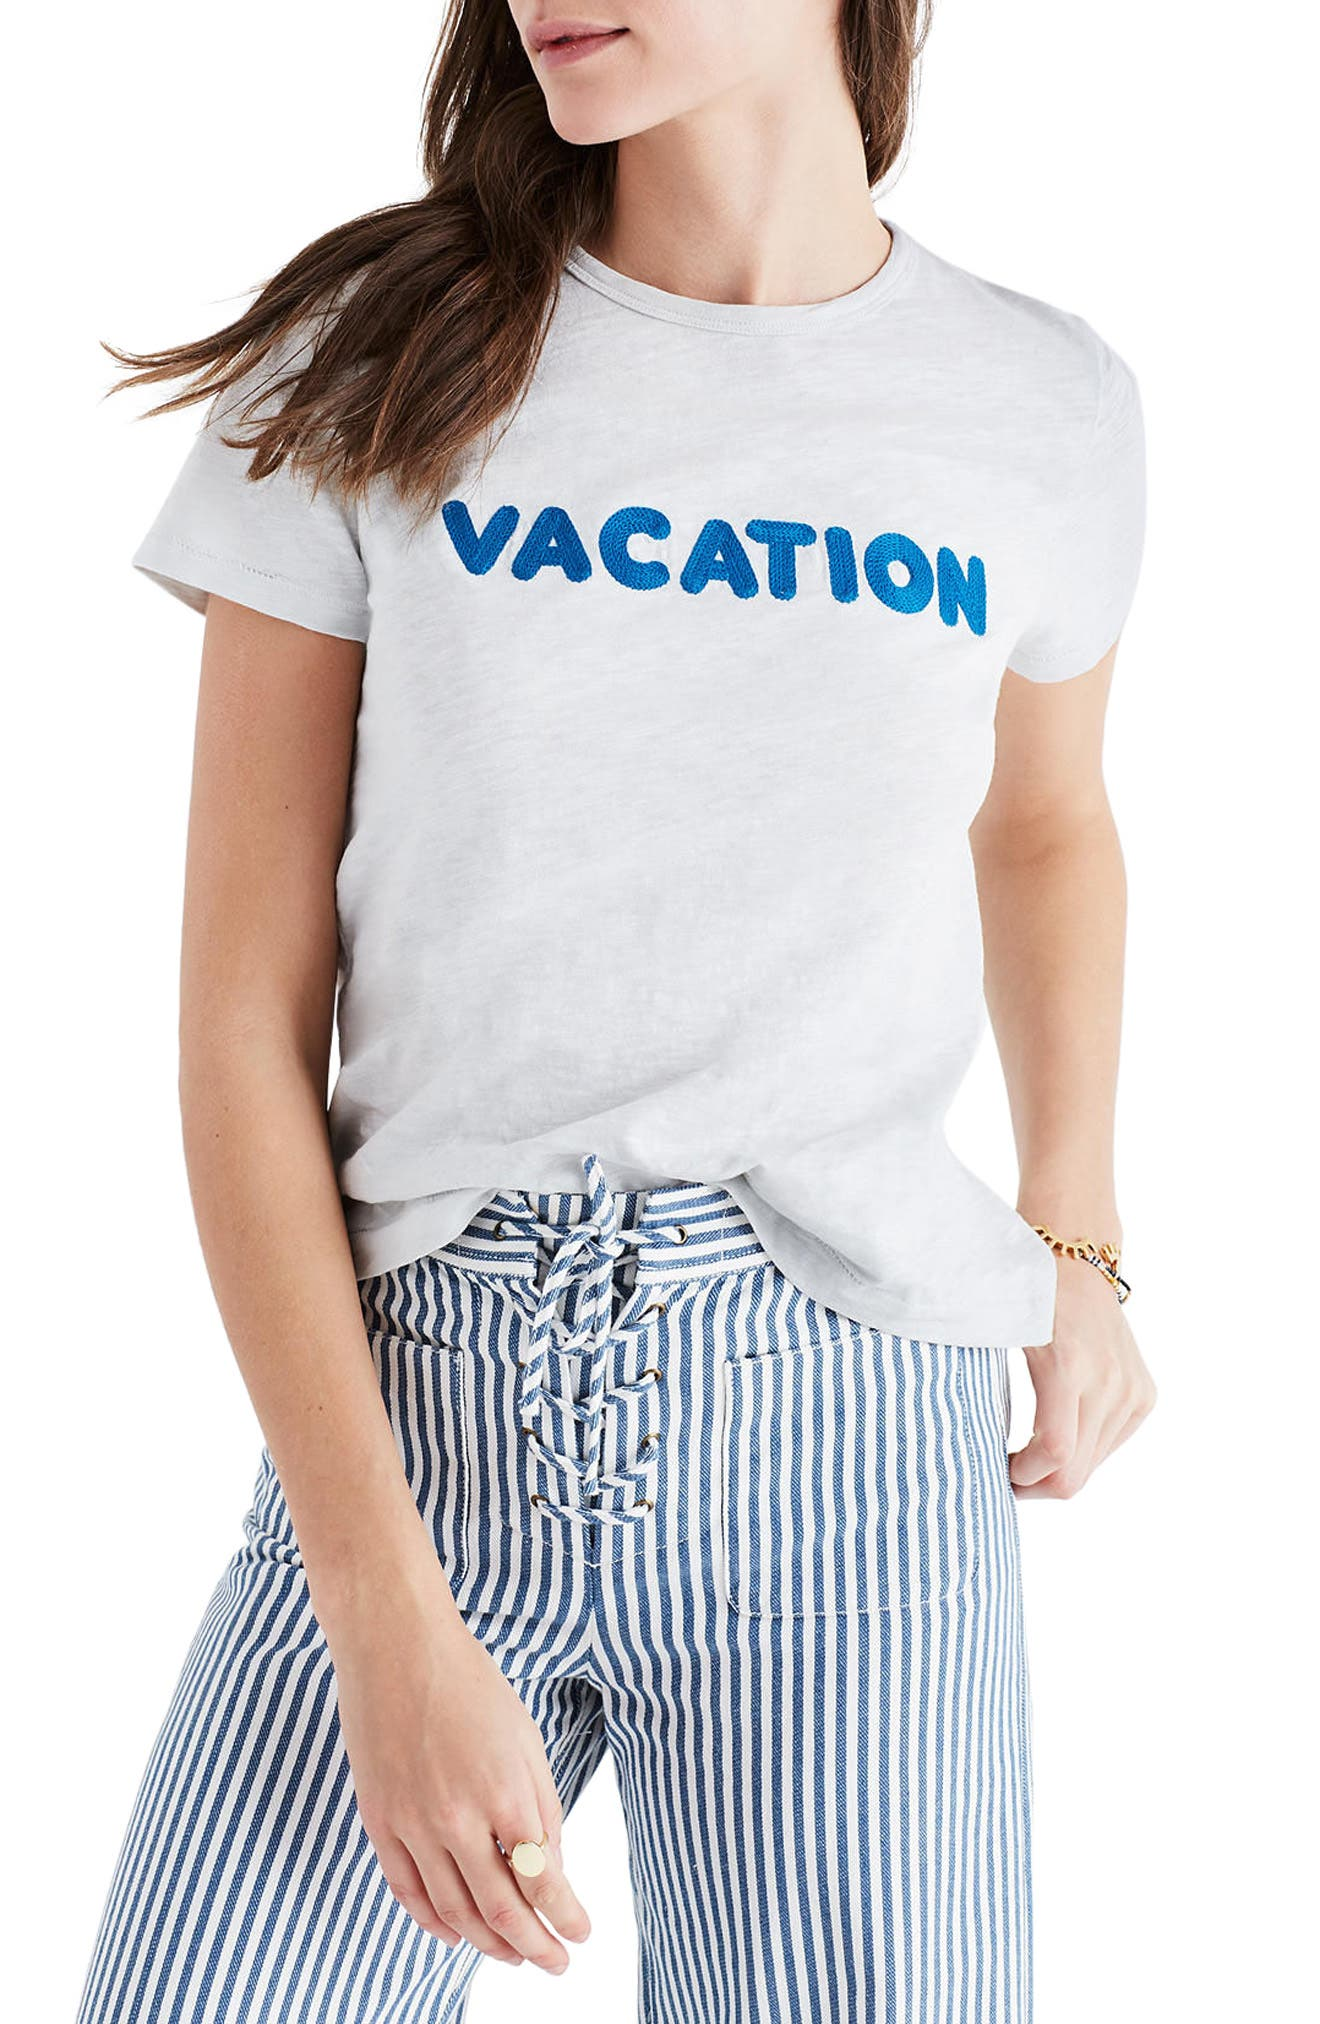 Alternate Image 1 Selected - Madewell Vacation Embroidered Tee